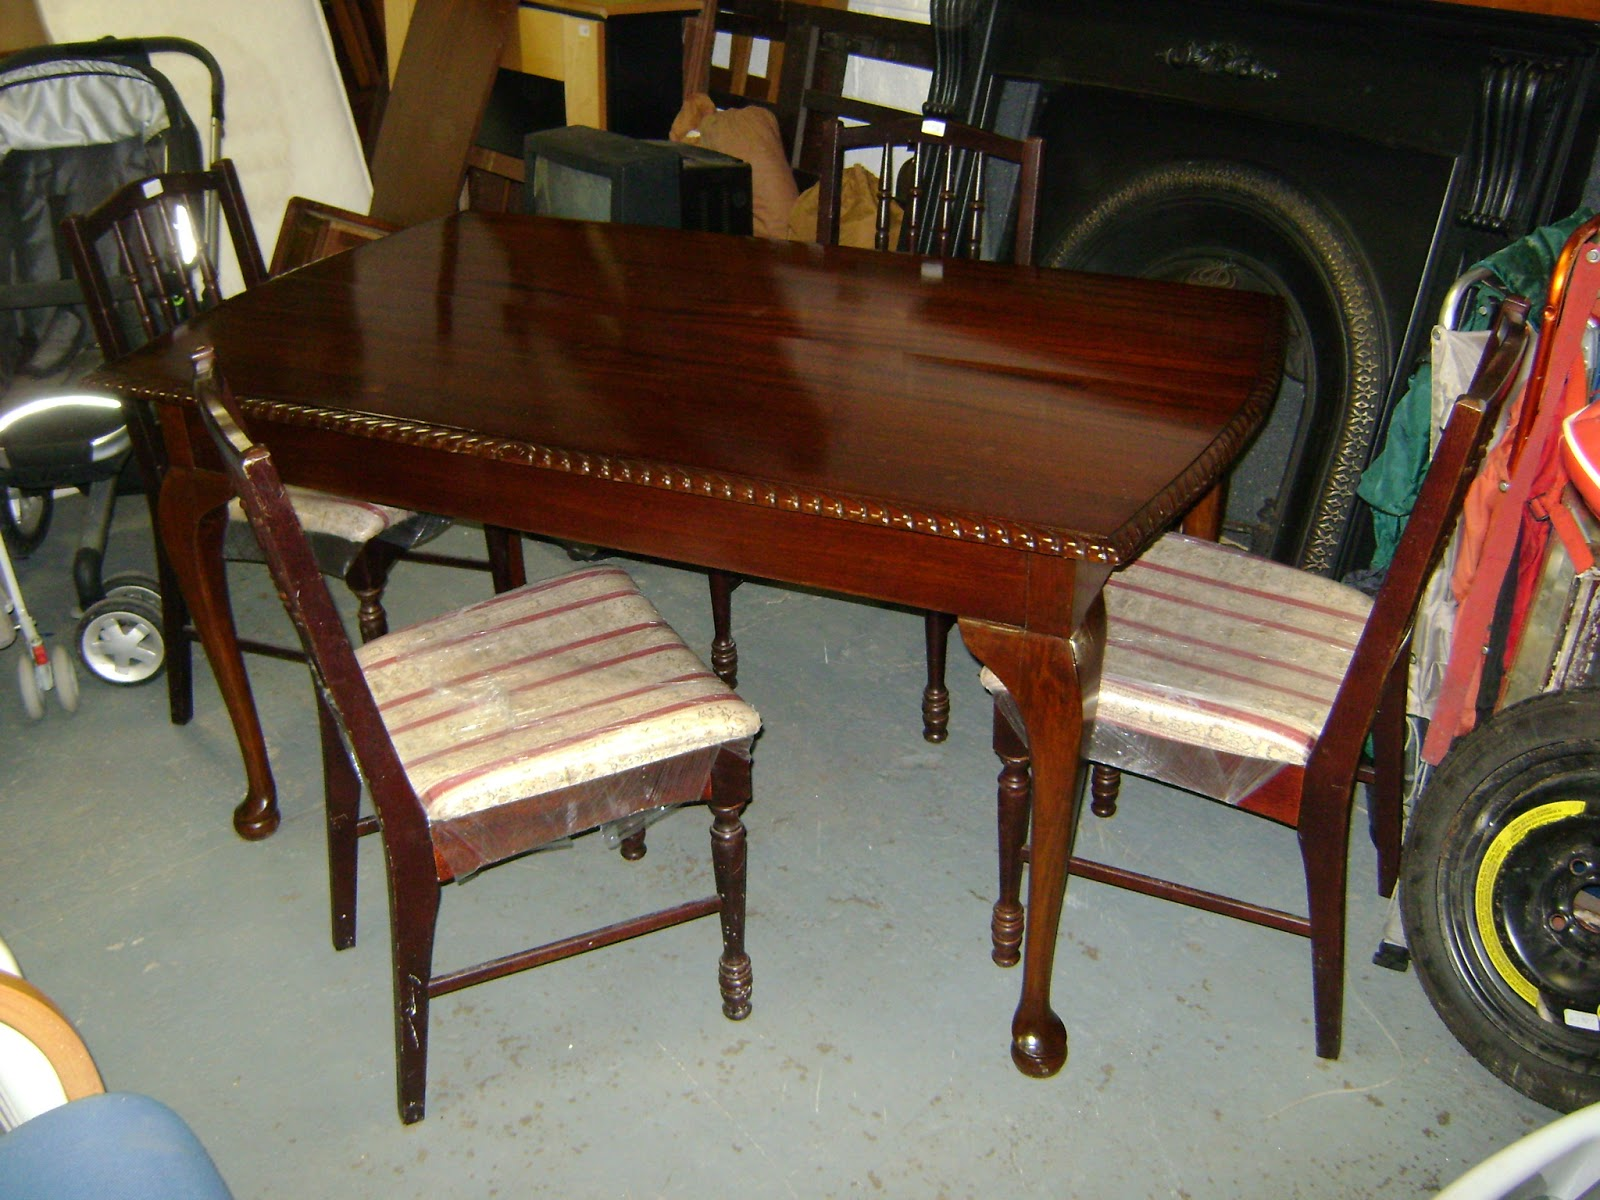 Astounding Dining Table And Chairs Second Hand London Download Free Architecture Designs Embacsunscenecom